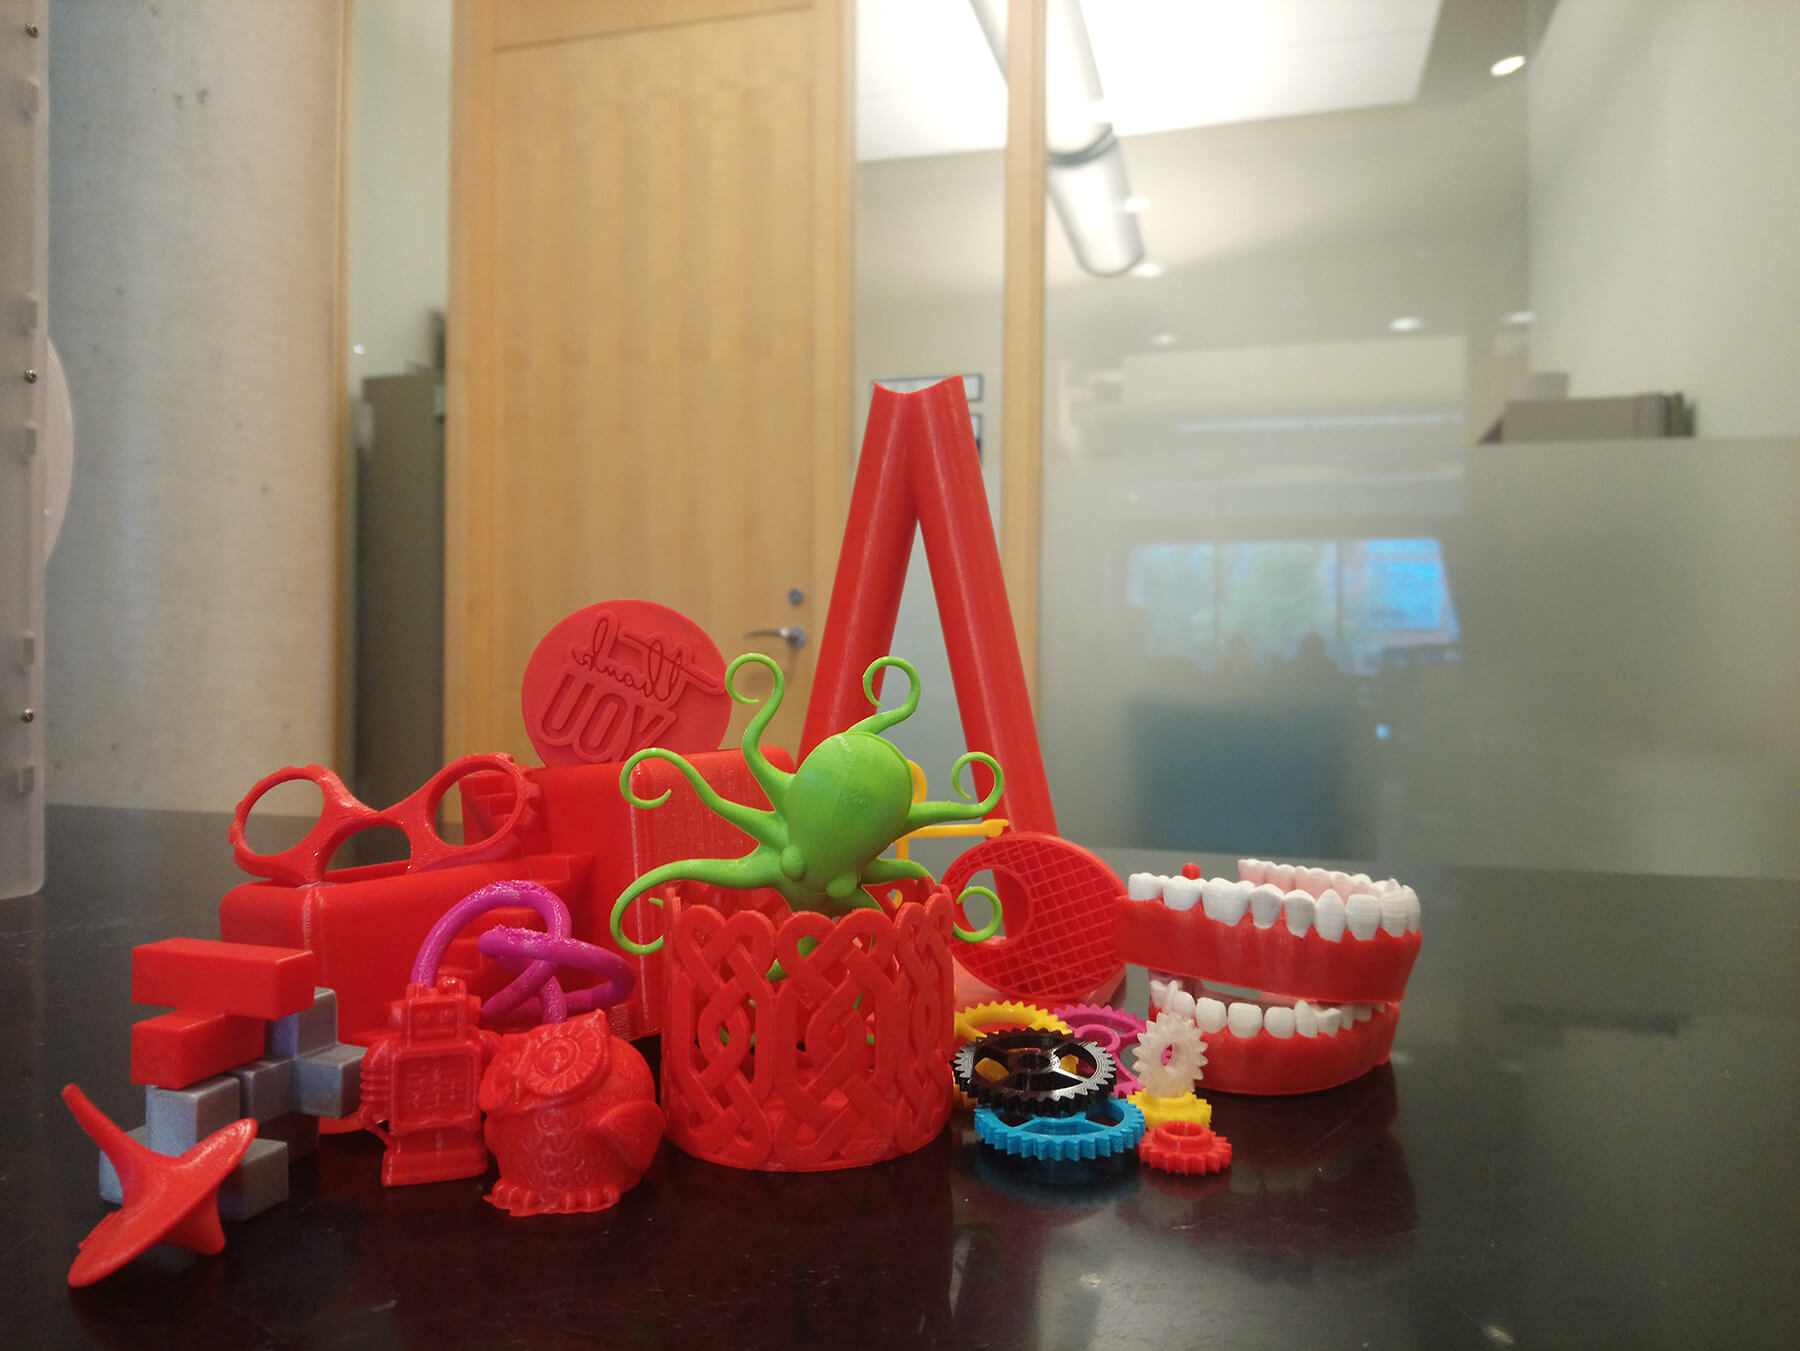 A variety of 3D printed items in various colours